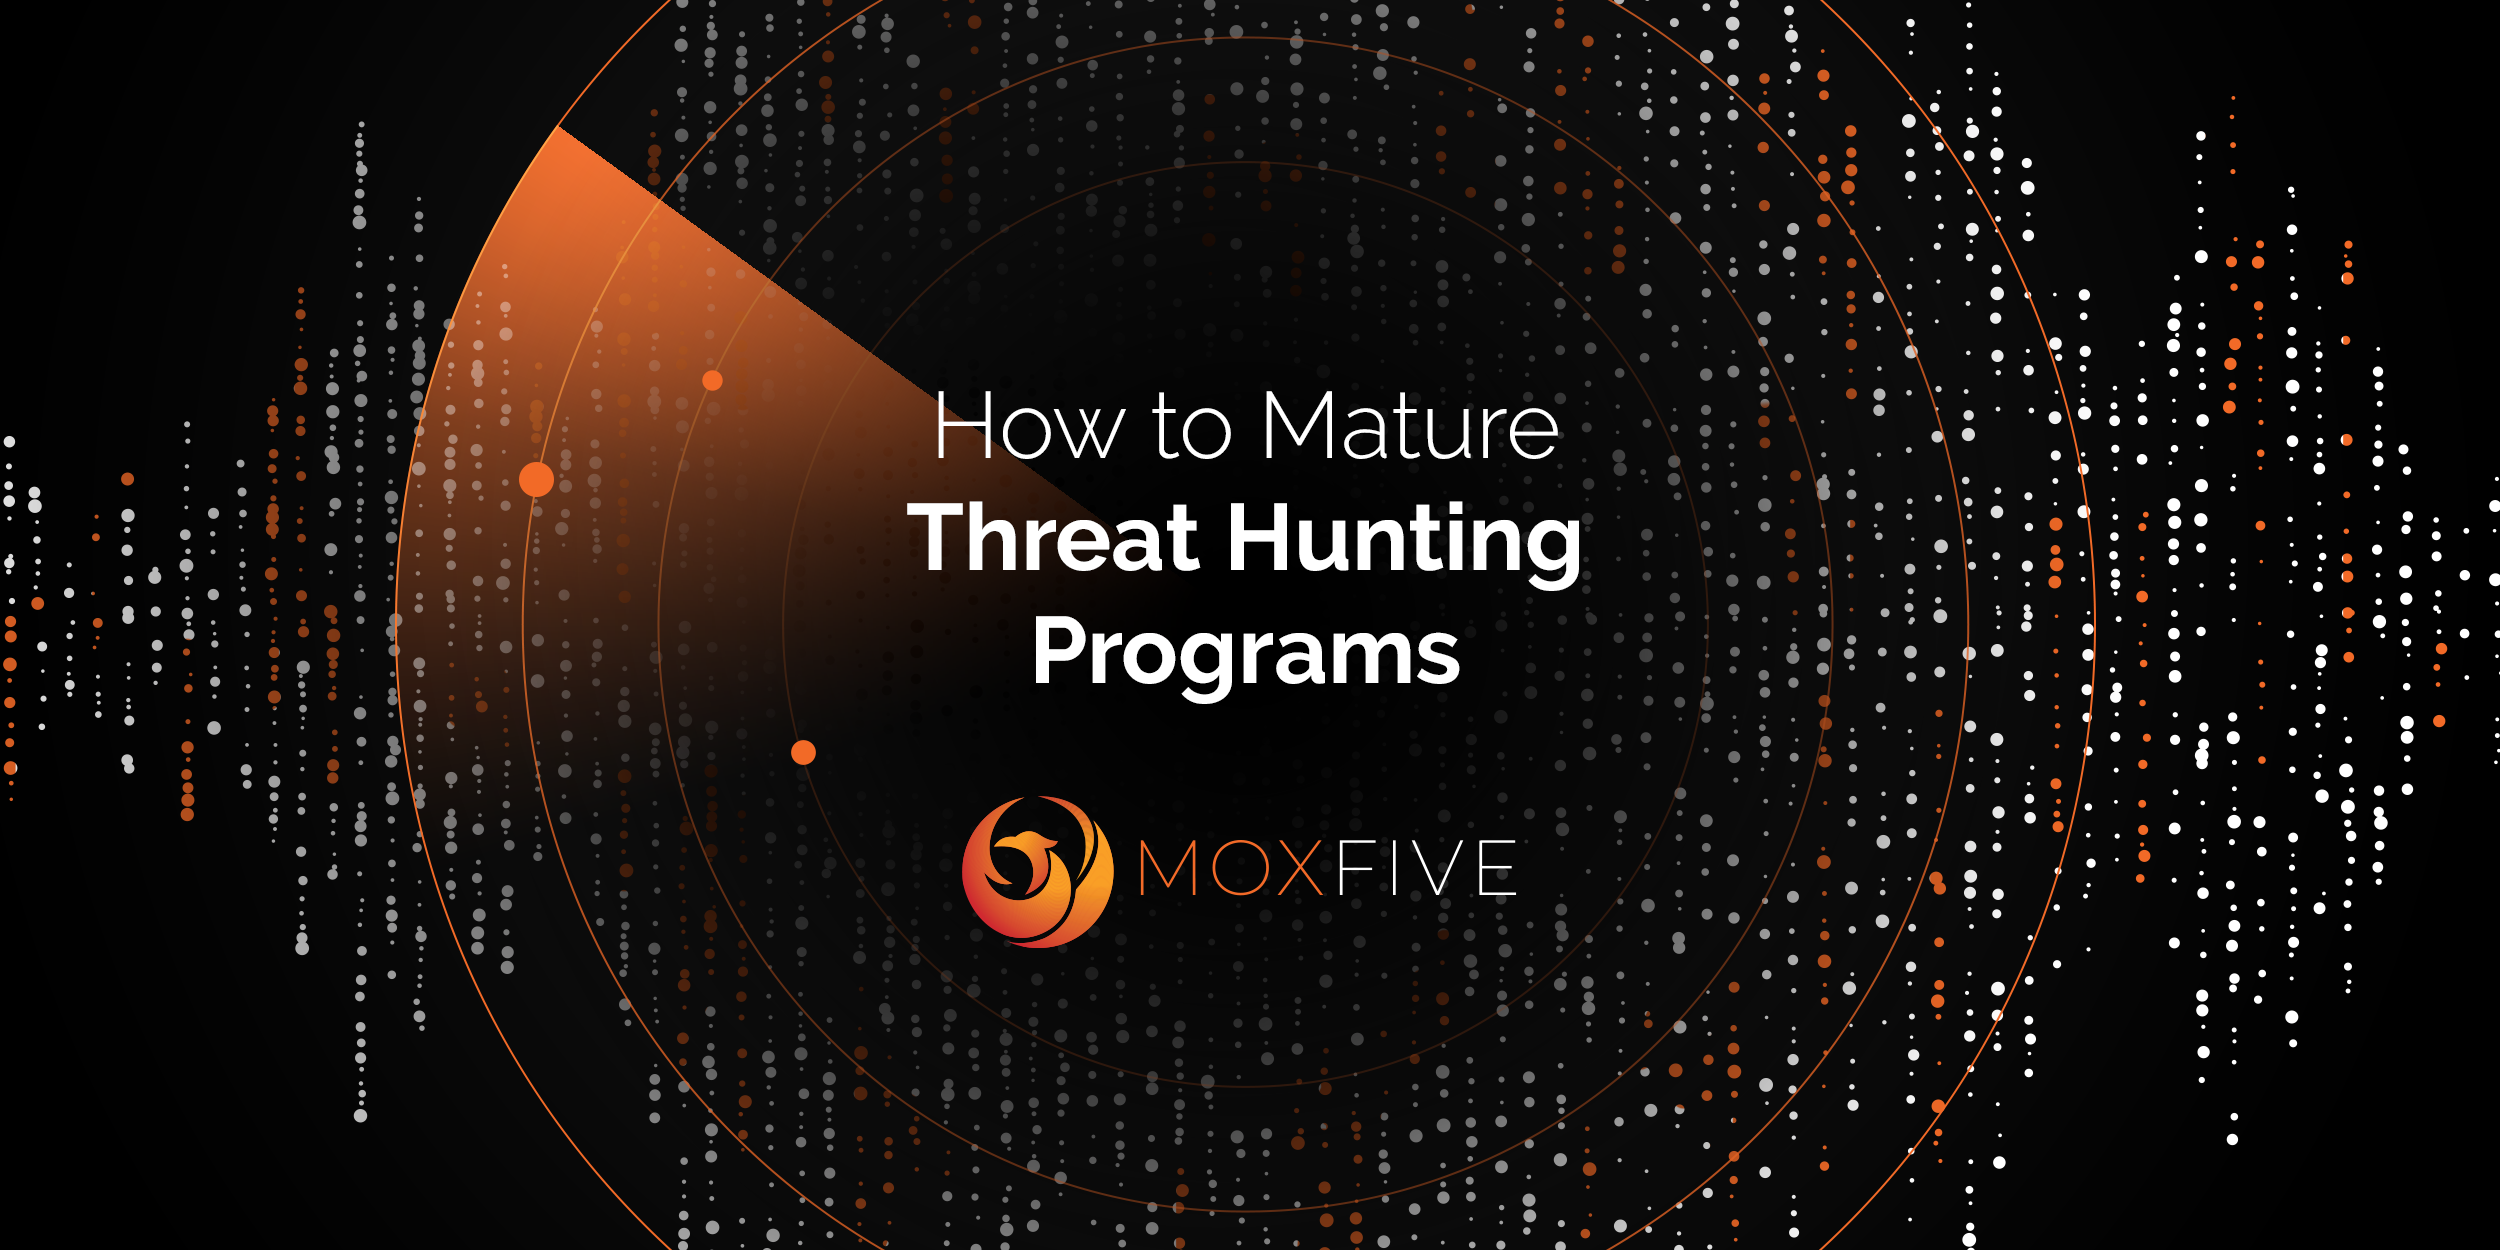 How to Mature Threat Hunting Programs